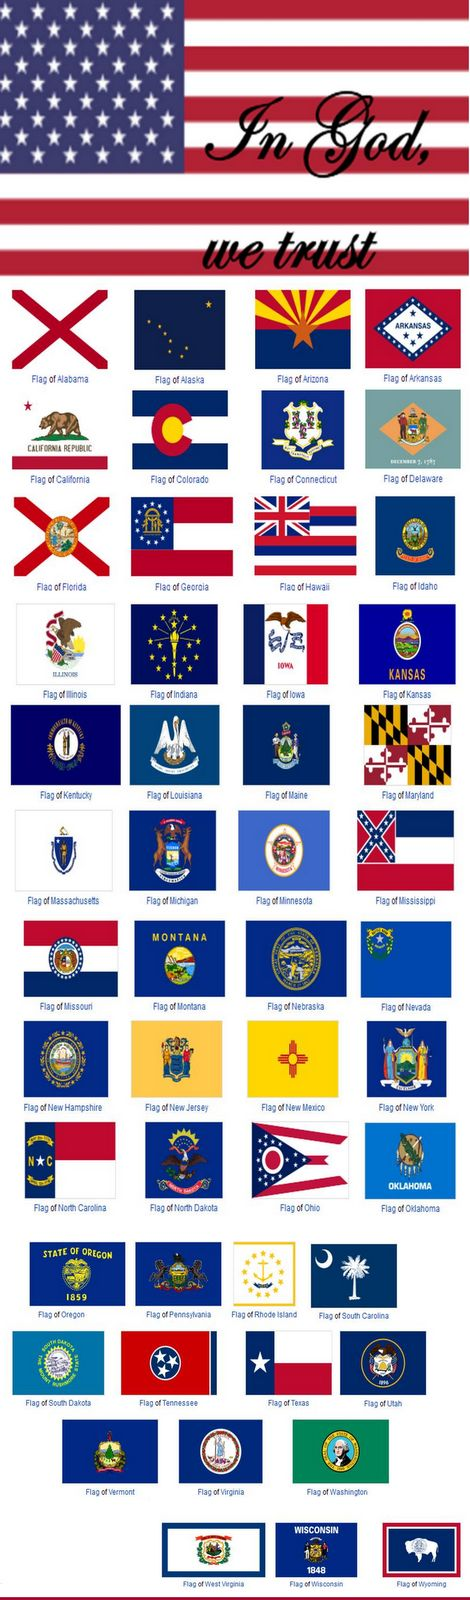 America, the Beautiful: The United States of America State Flags